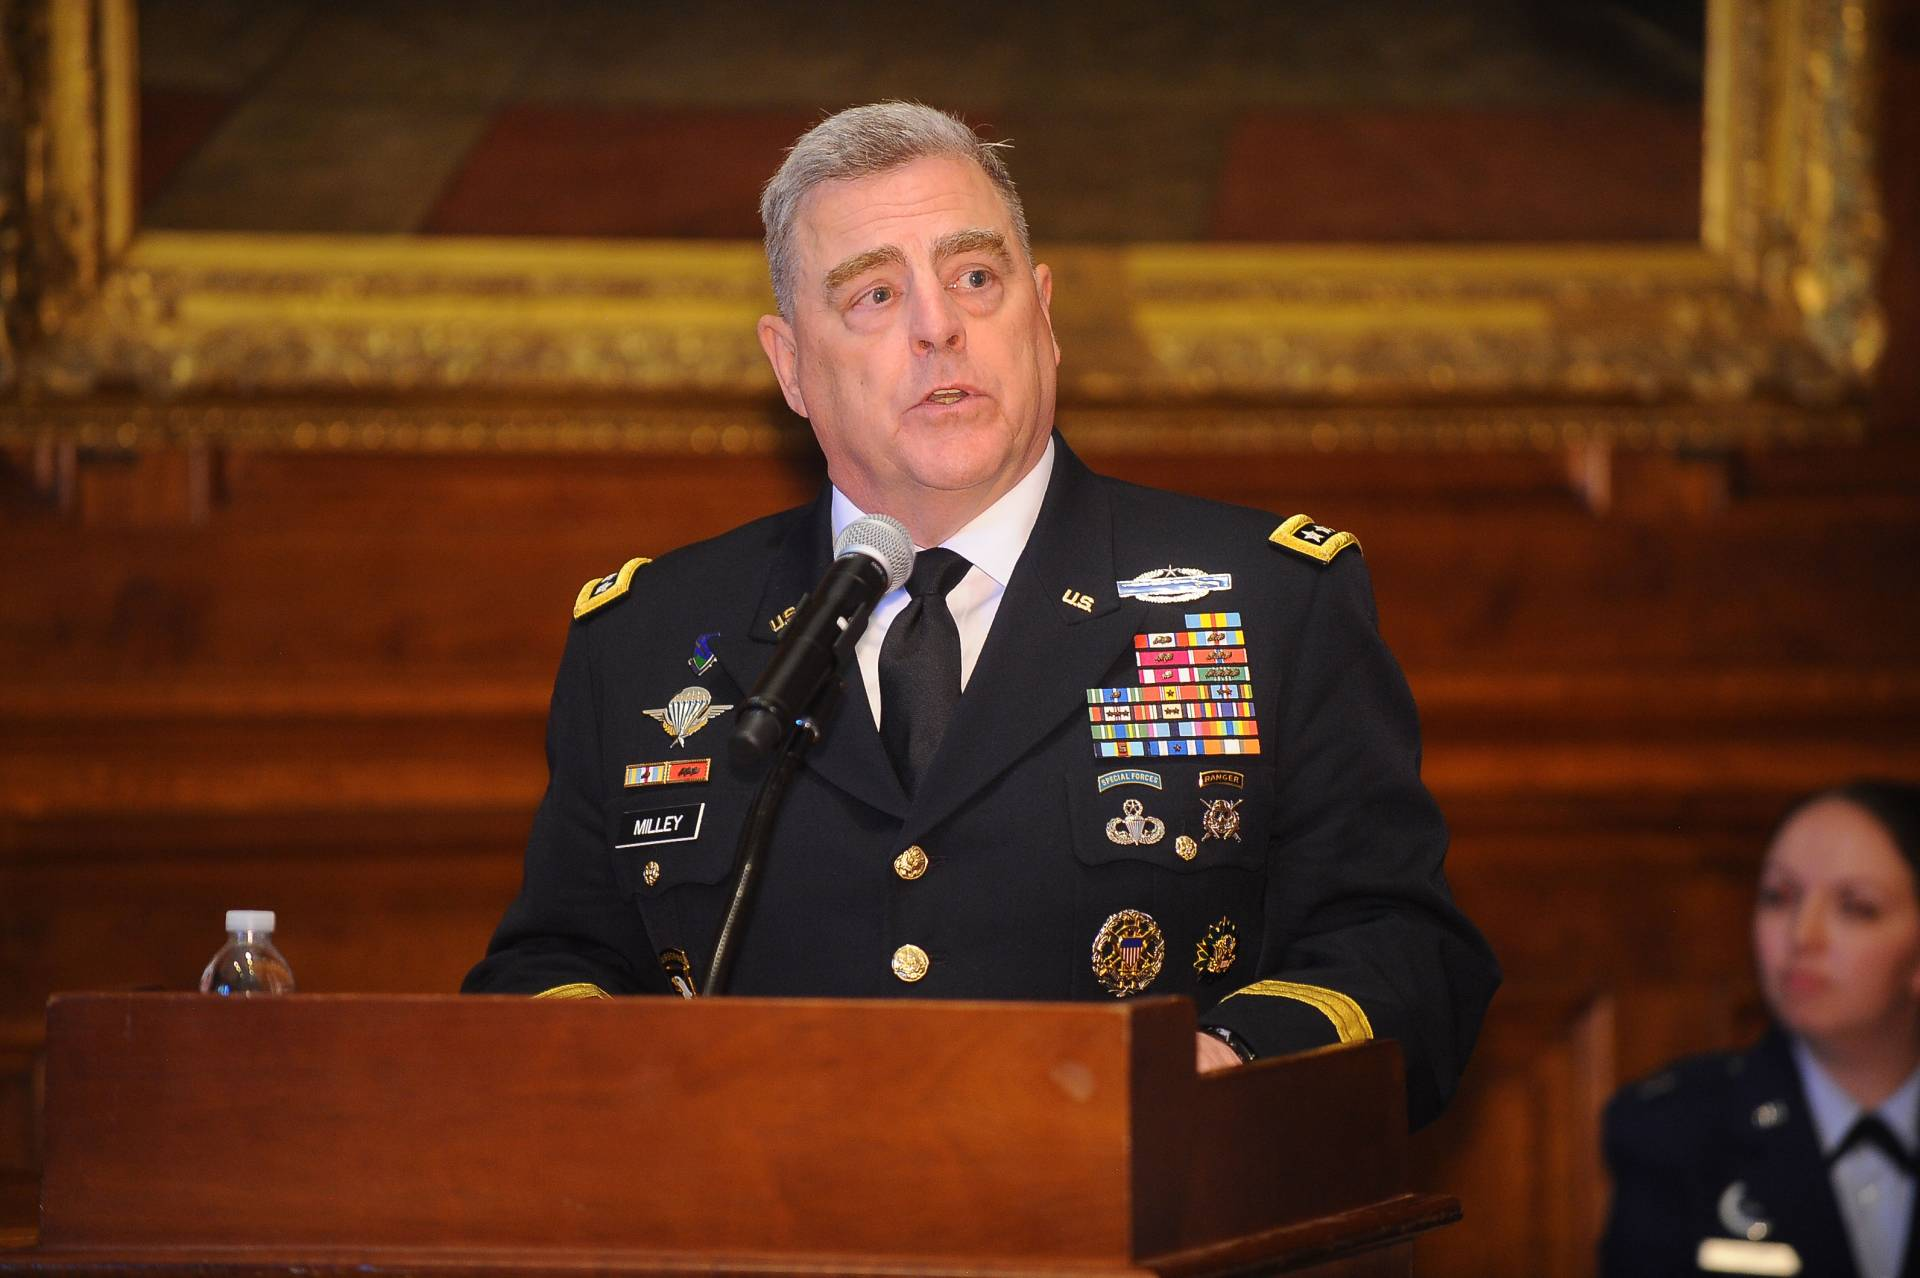 After Princeton graduation, ROTC students are commissioned